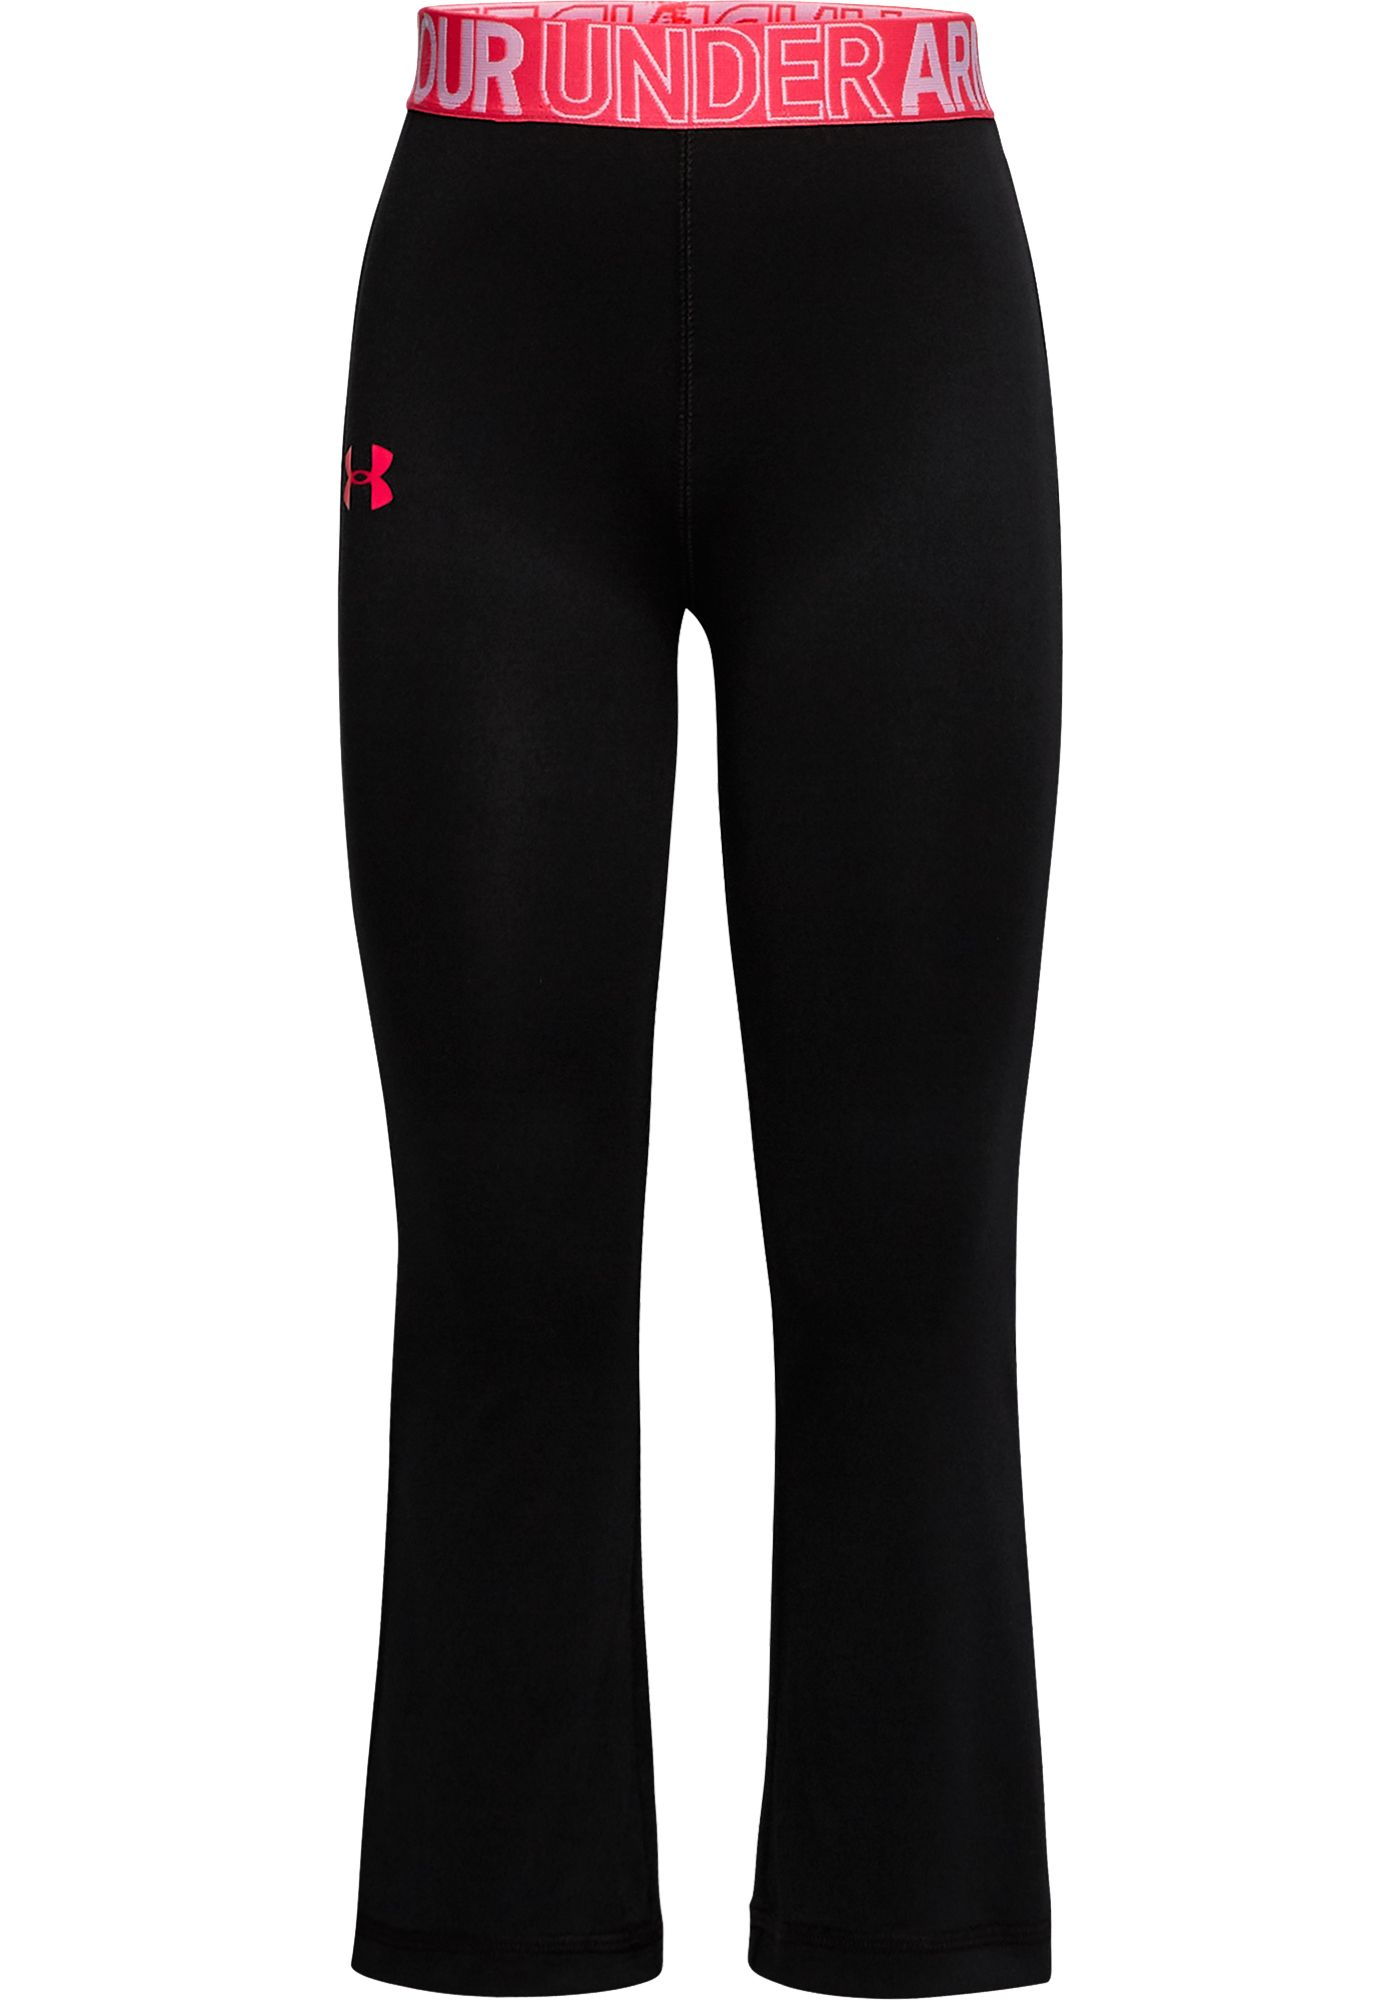 Under Armour Little Girls' Pronto Yoga Pants